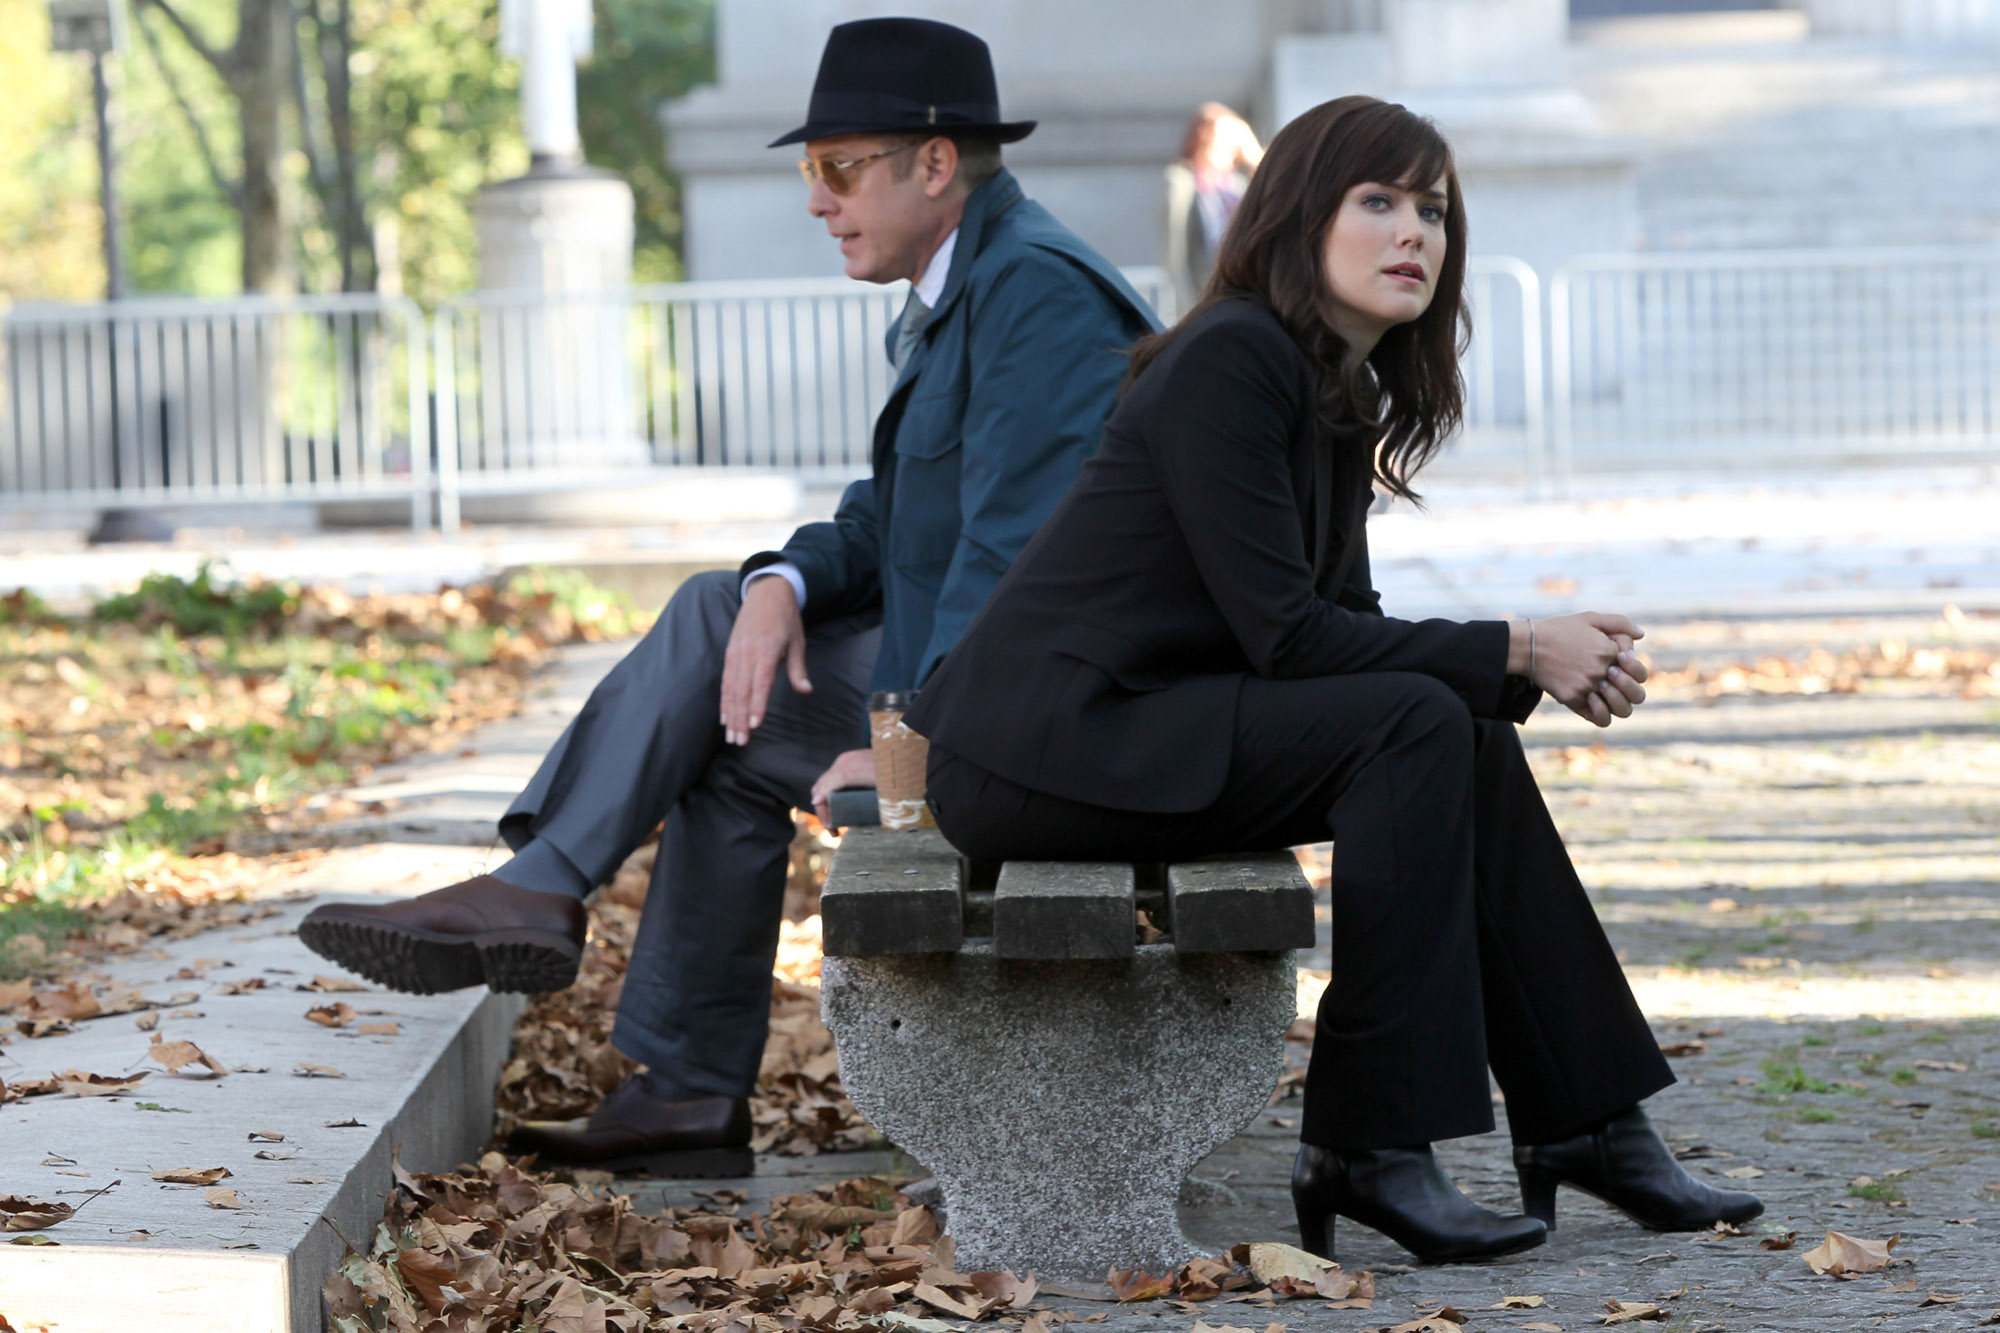 """NEW YORK, NY - OCTOBER 03:  James Spader, Megan Boone film NBC-TV's """"the Blacklist""""on October 3, 2013 in New York City.  (Photo by Steve Sands/Getty Images)"""